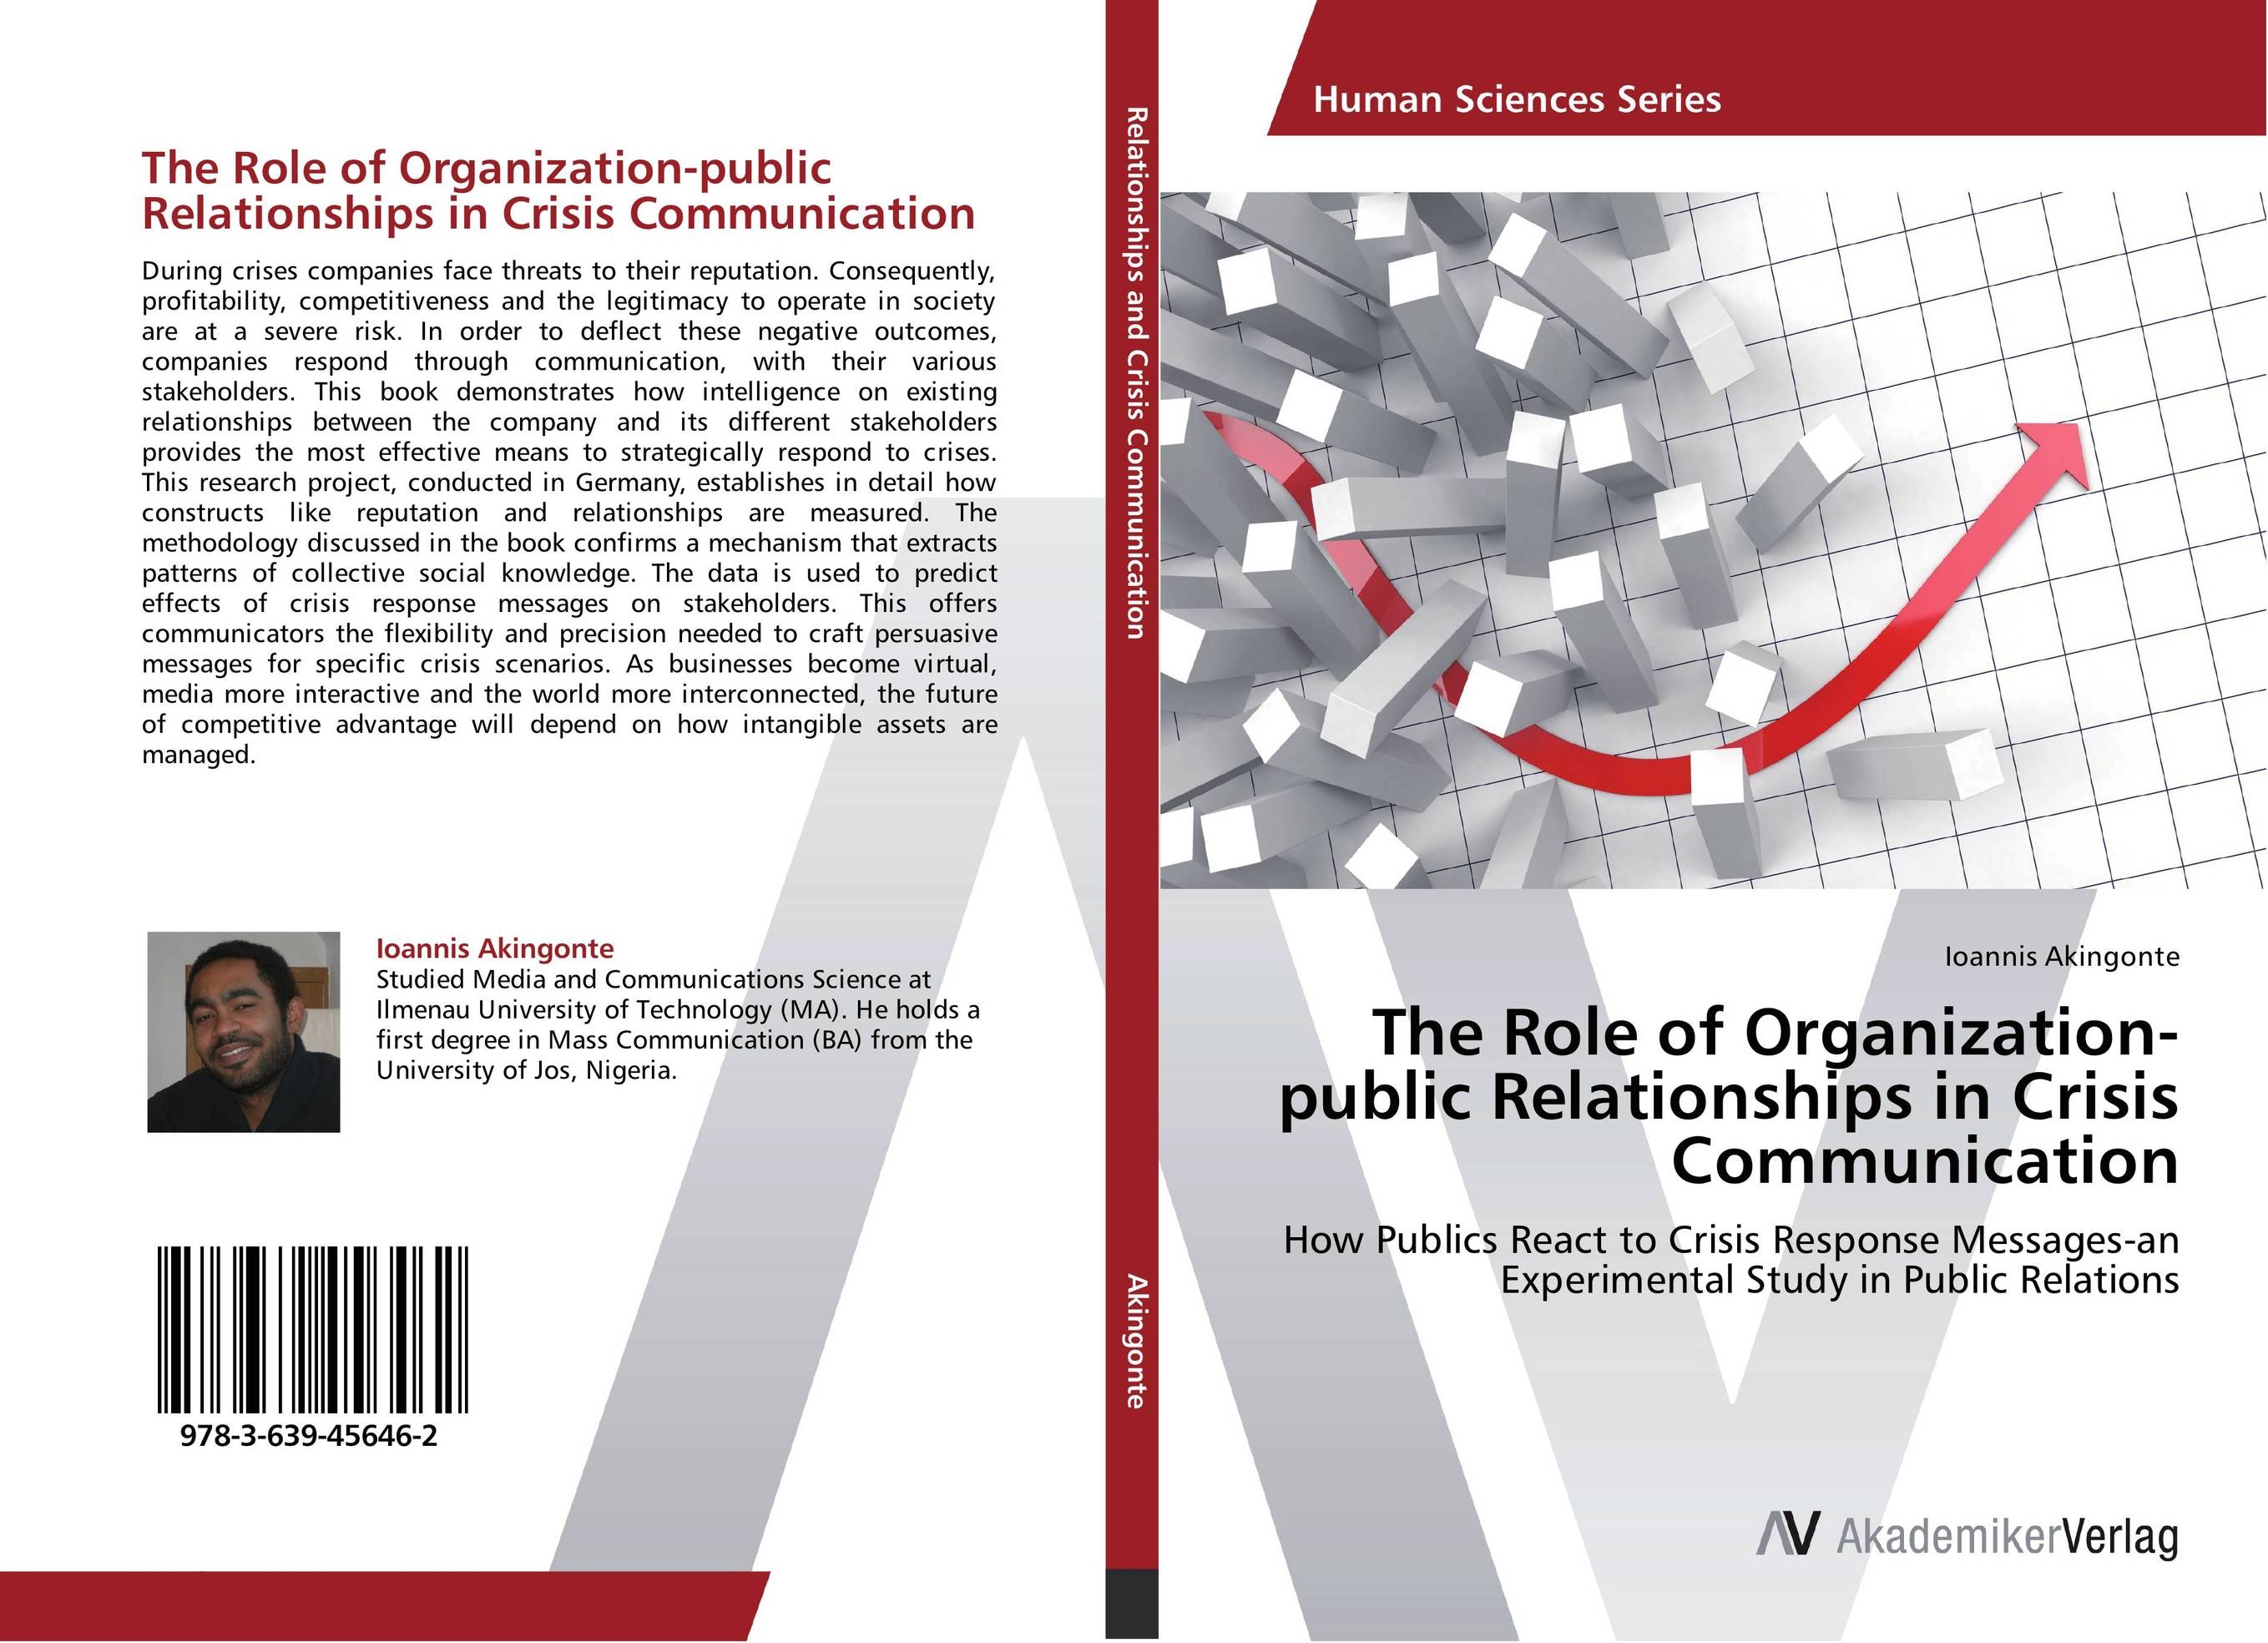 The Role of Organization-public Relationships in Crisis Communication silent spill – the organization of an industrial crisis